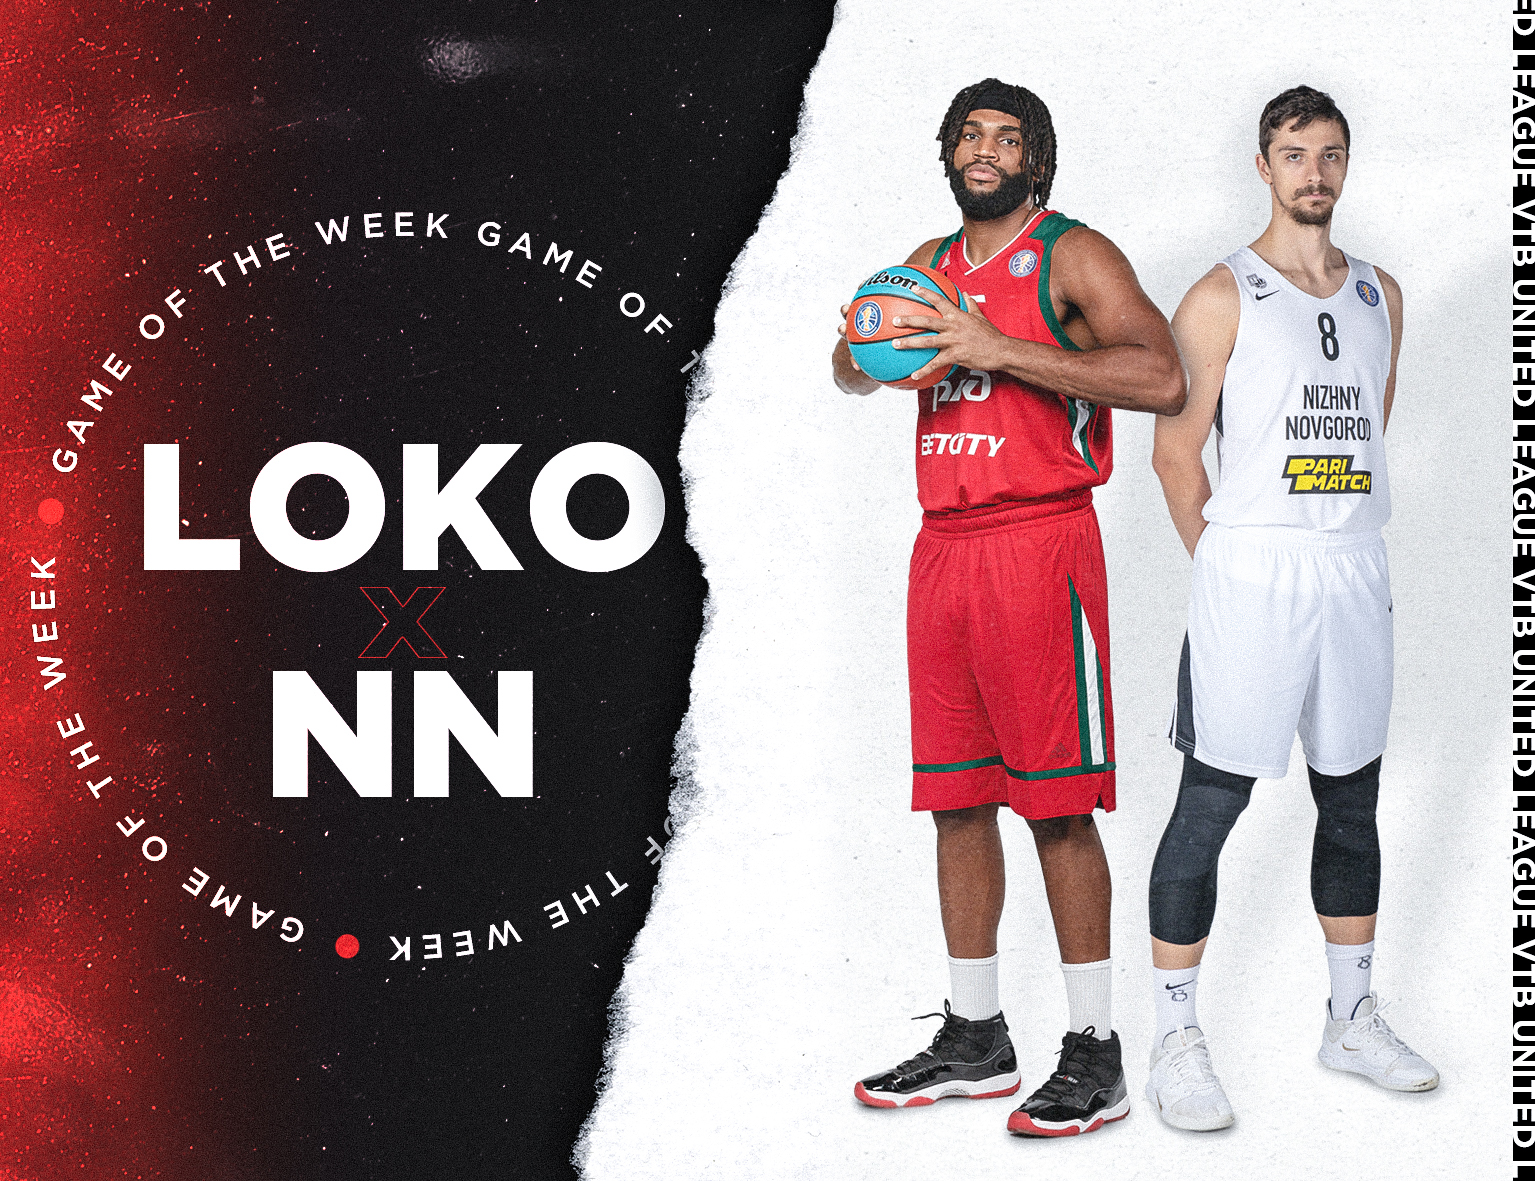 Game of the Week: Lokomotiv-Kuban vs Nizhny Novgorod